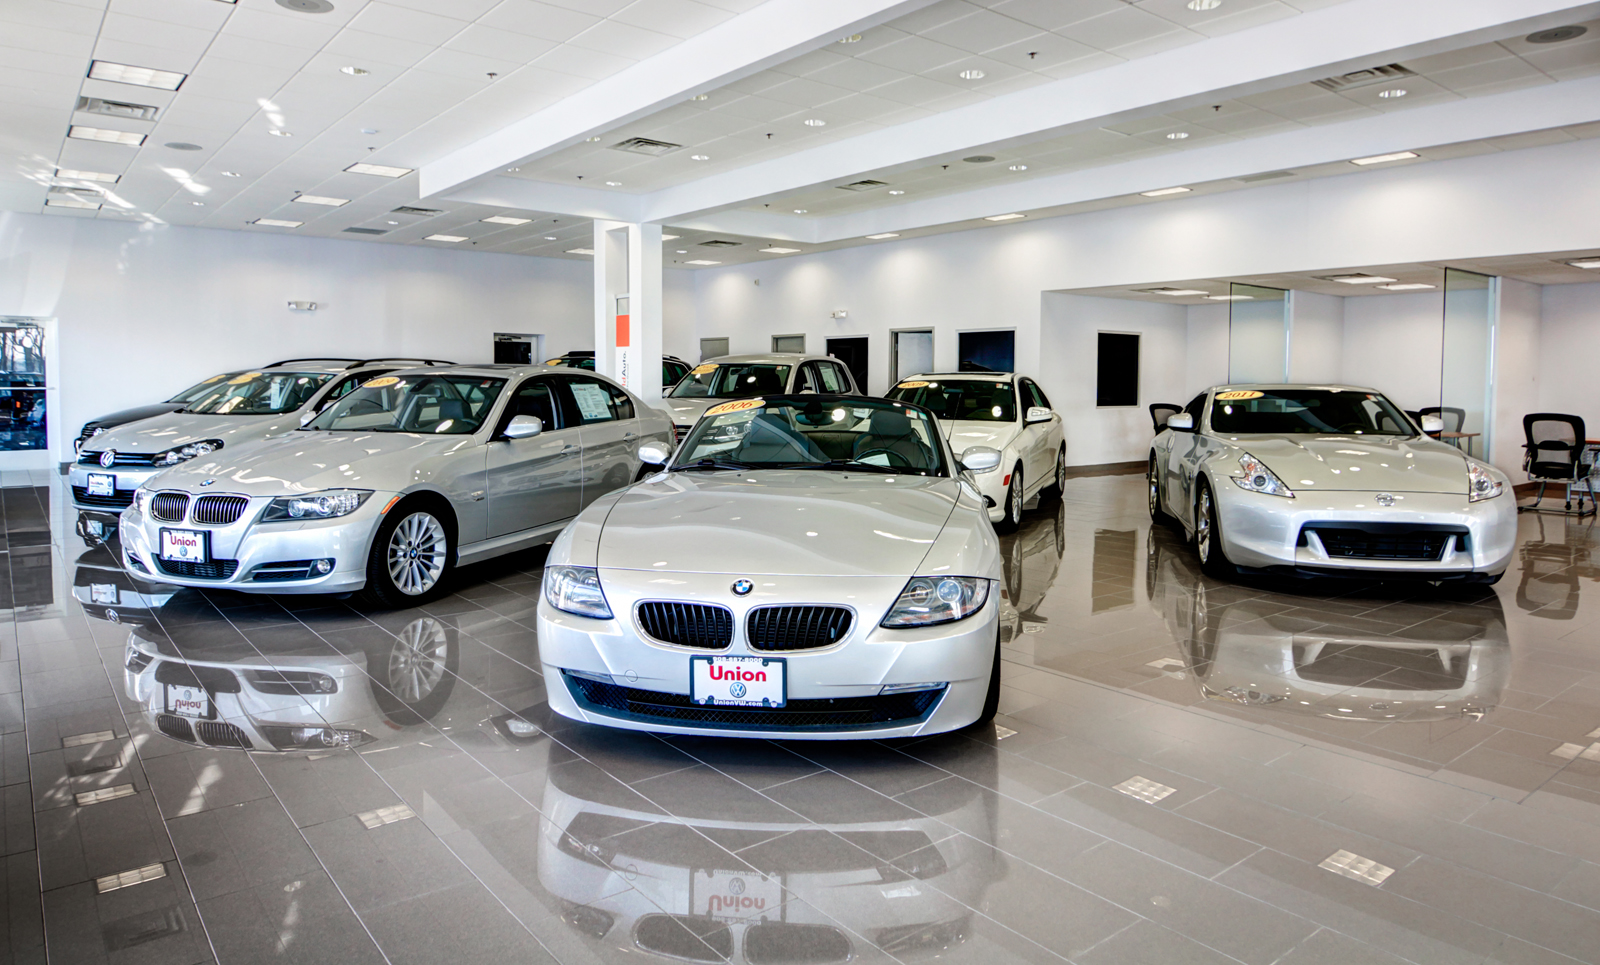 Somerset Nj Used Car Dealers